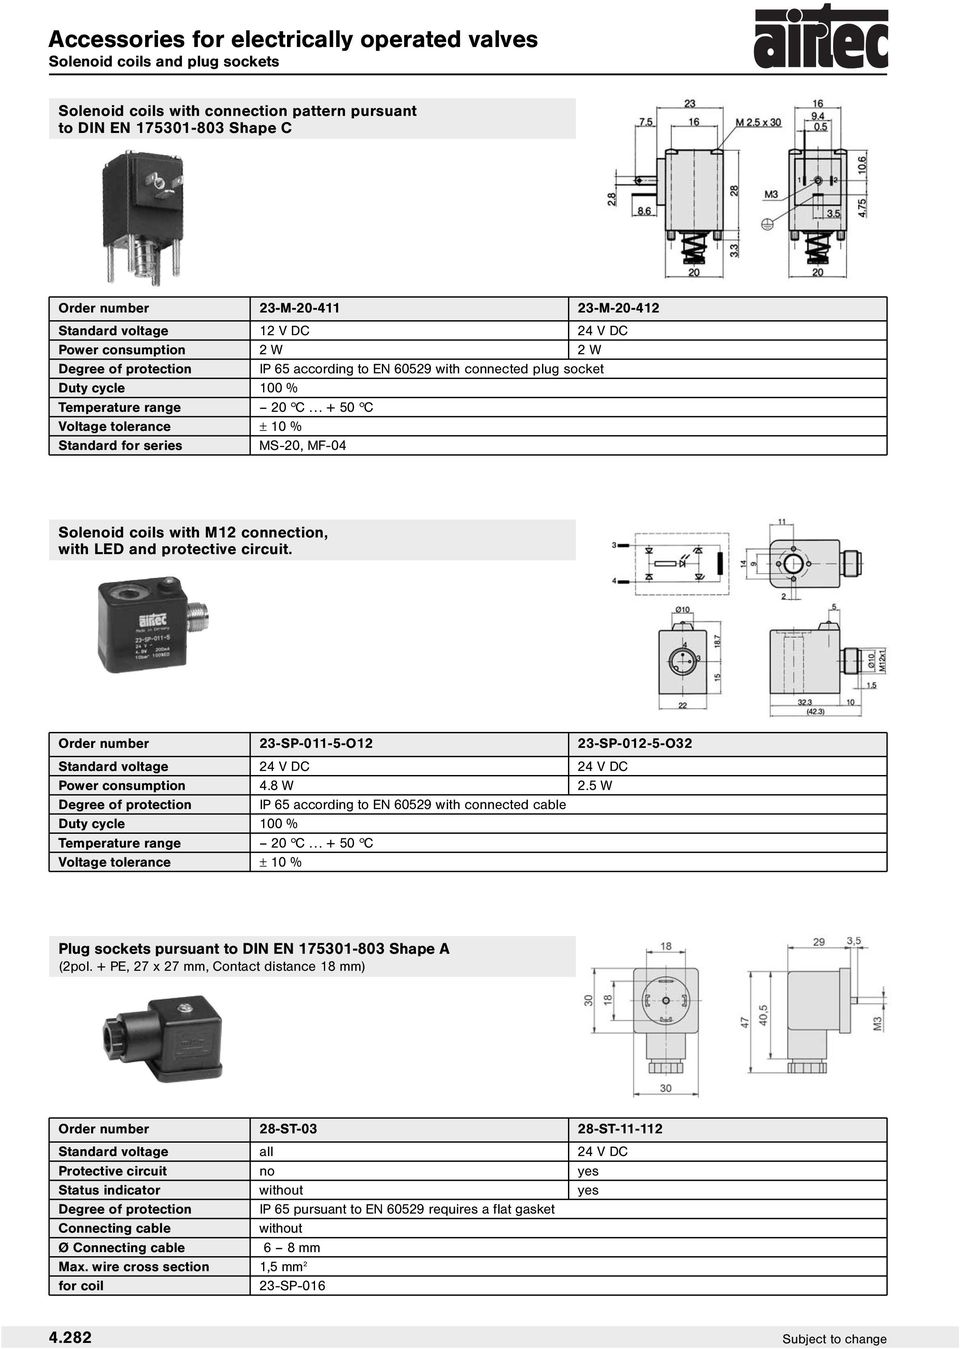 .. + 50 hc Standard for series MS-20, MF-04 Solenoid coils with M12 connection, with LED and protective circuit.